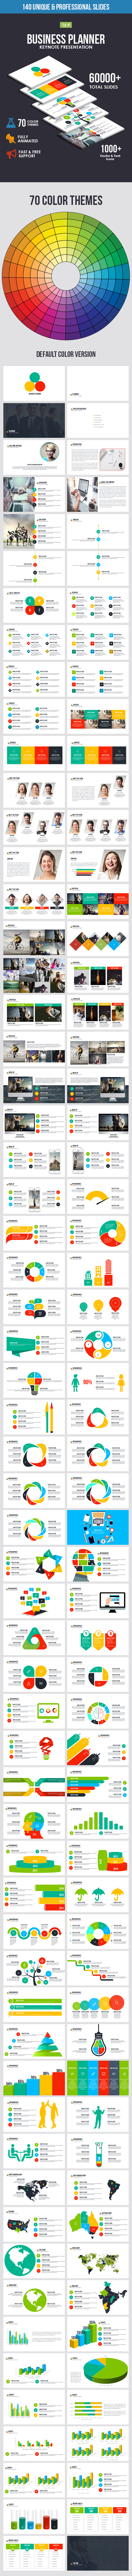 Business Planner Keynote Presentation Template - Business Keynote Templates